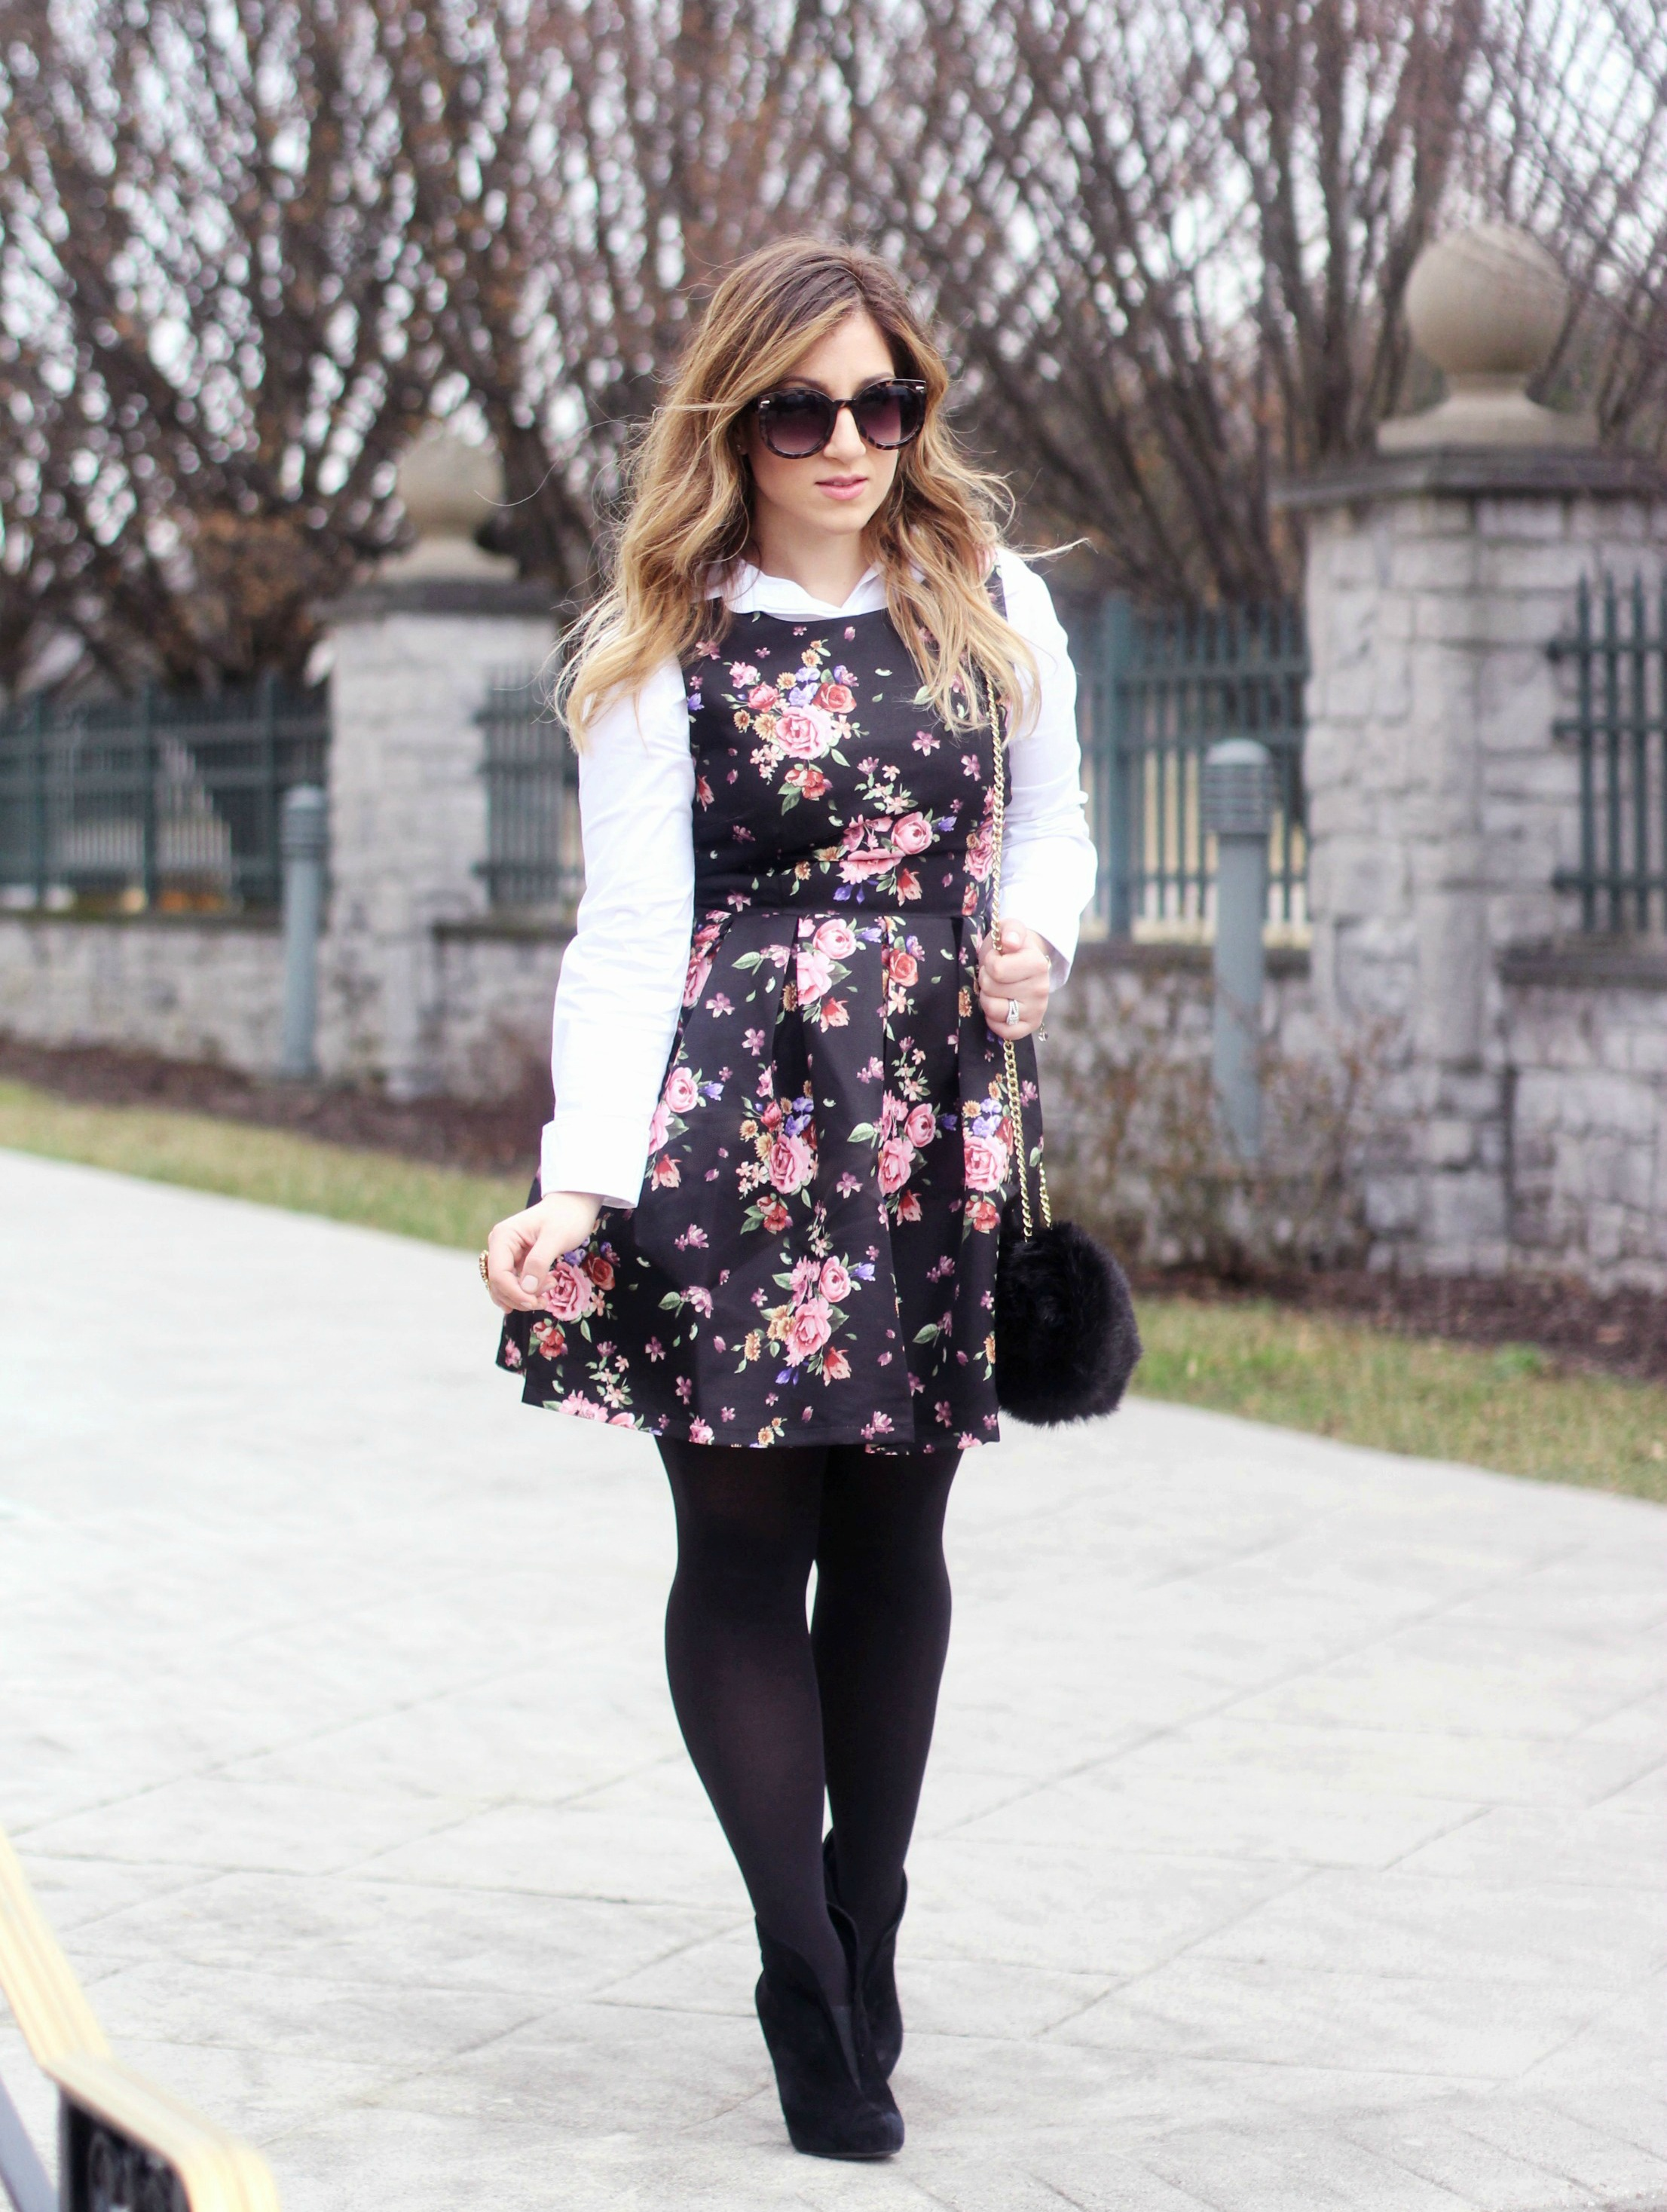 Zoe With Love styles a black floral print dress, perfect for winter and into spring